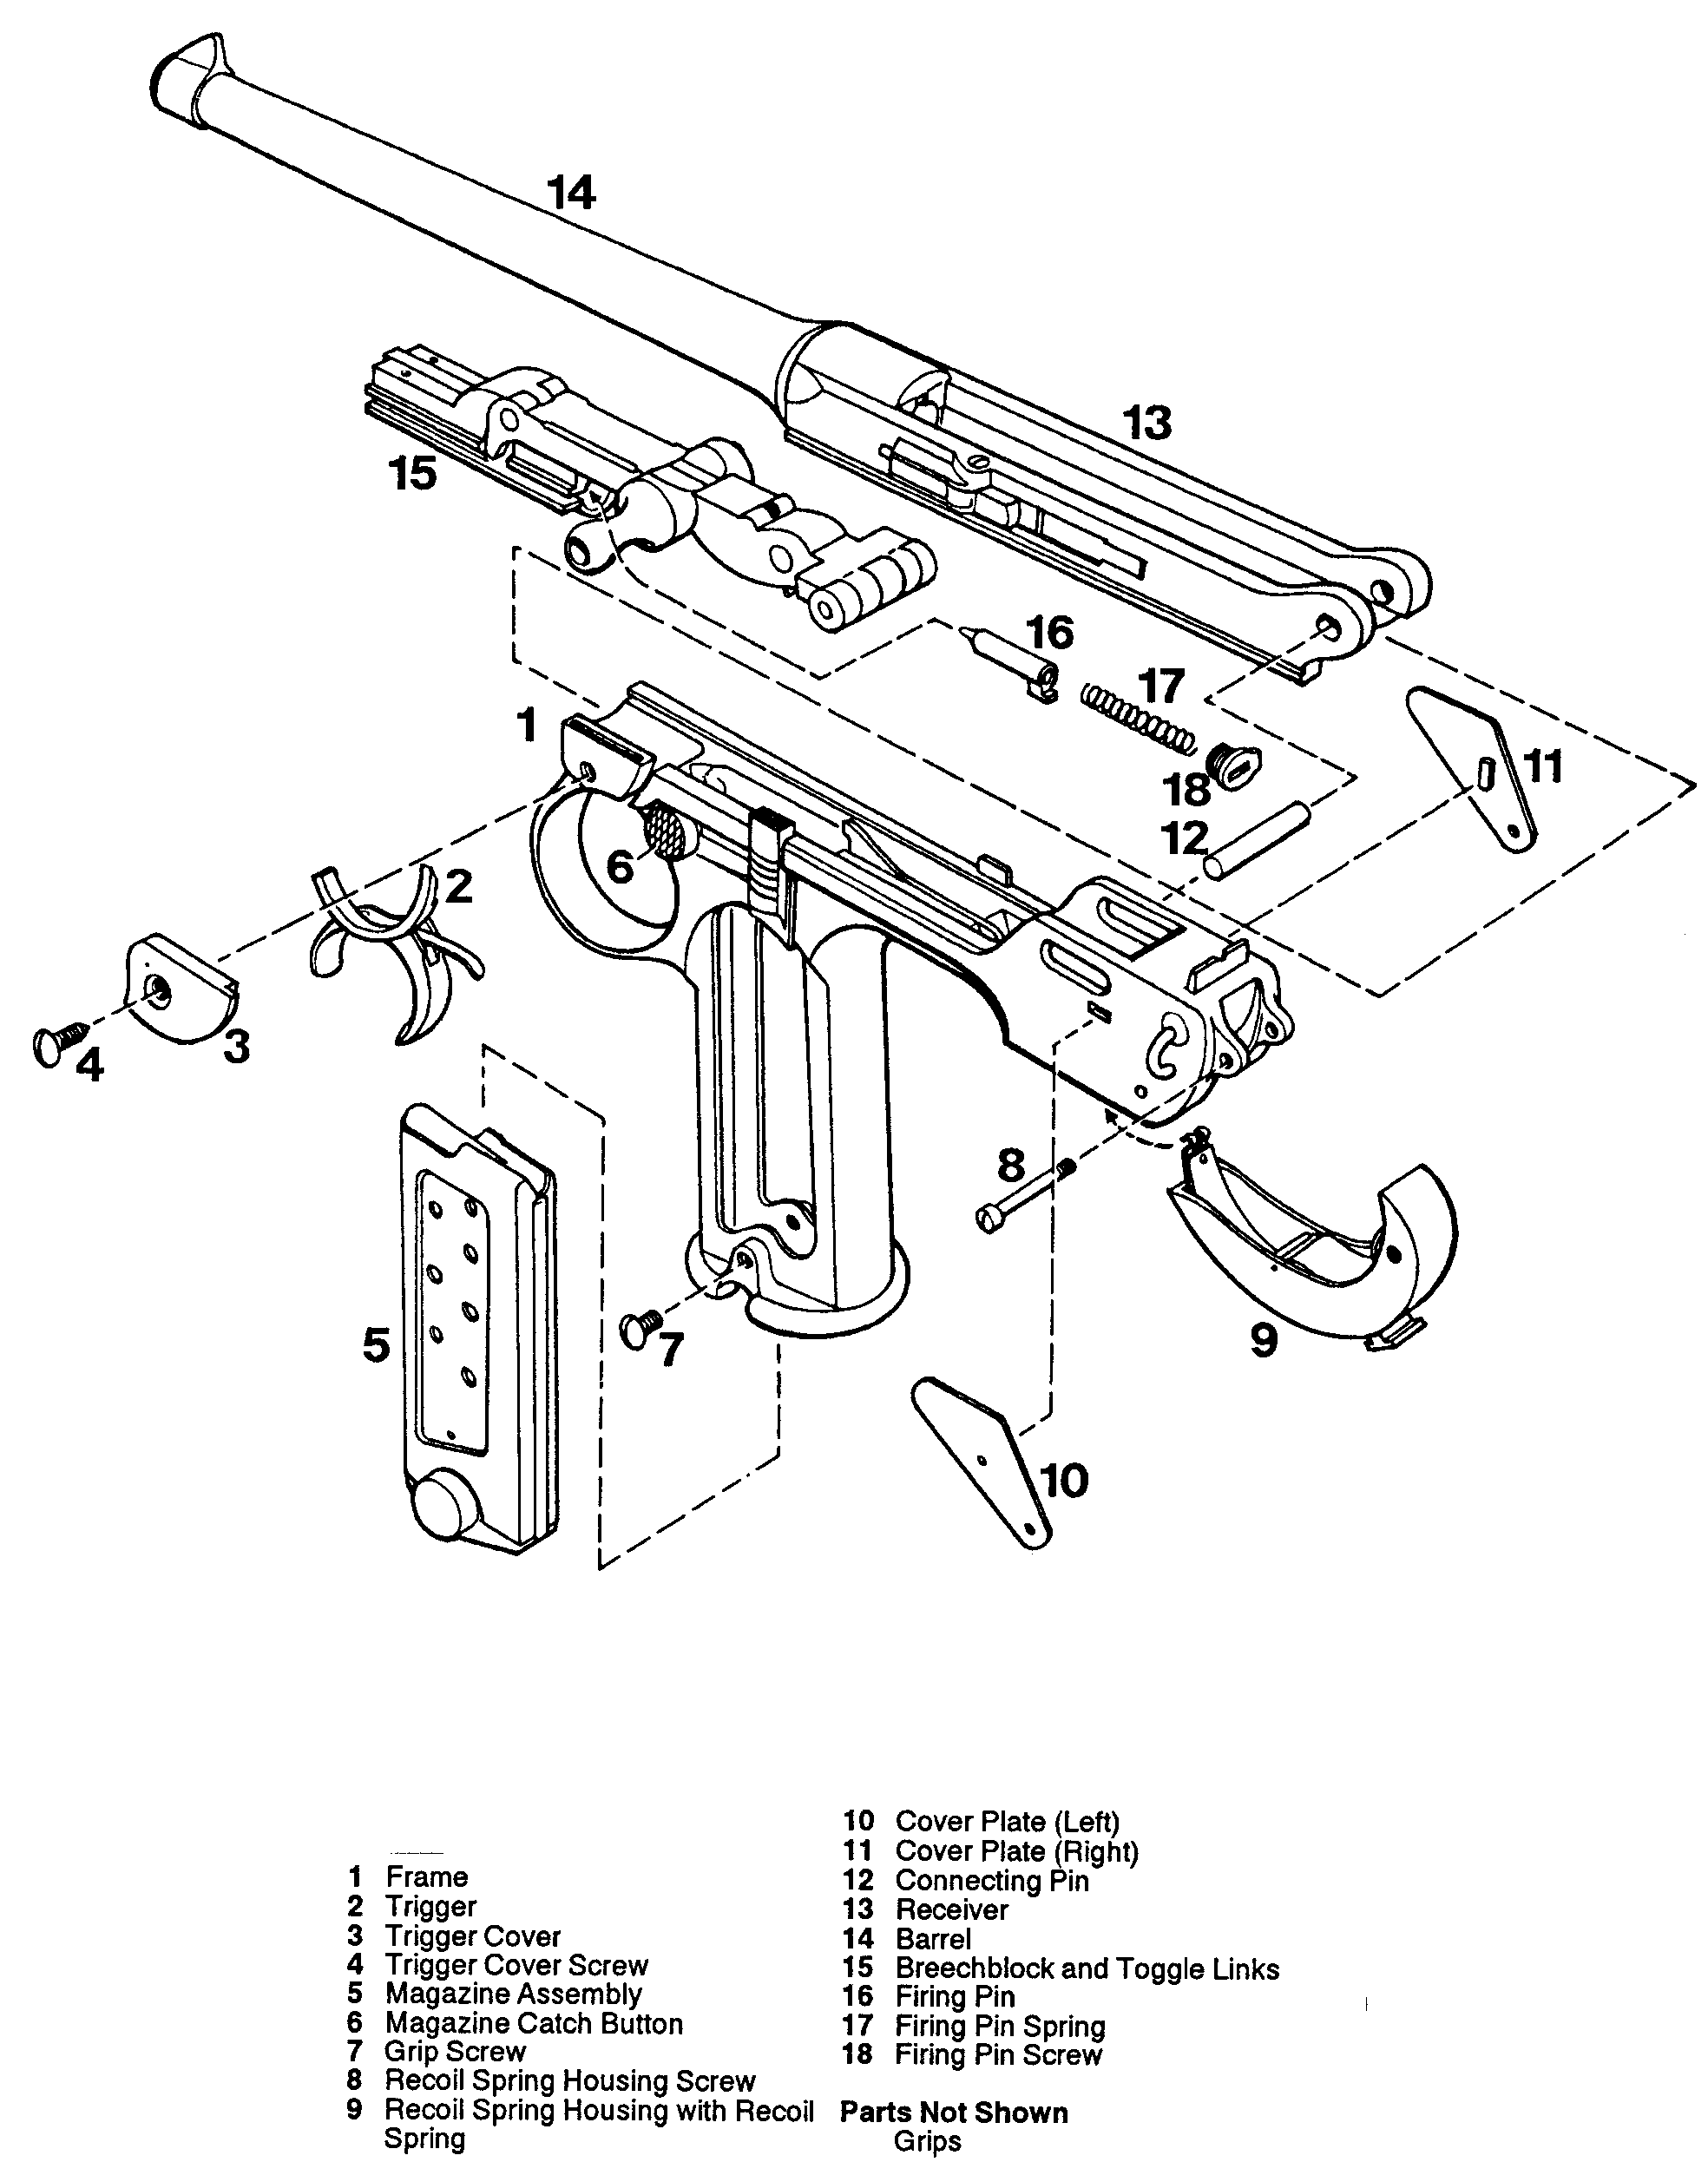 hight resolution of luger p08 blueprint diagram firearms weapons diy crafts anime art german